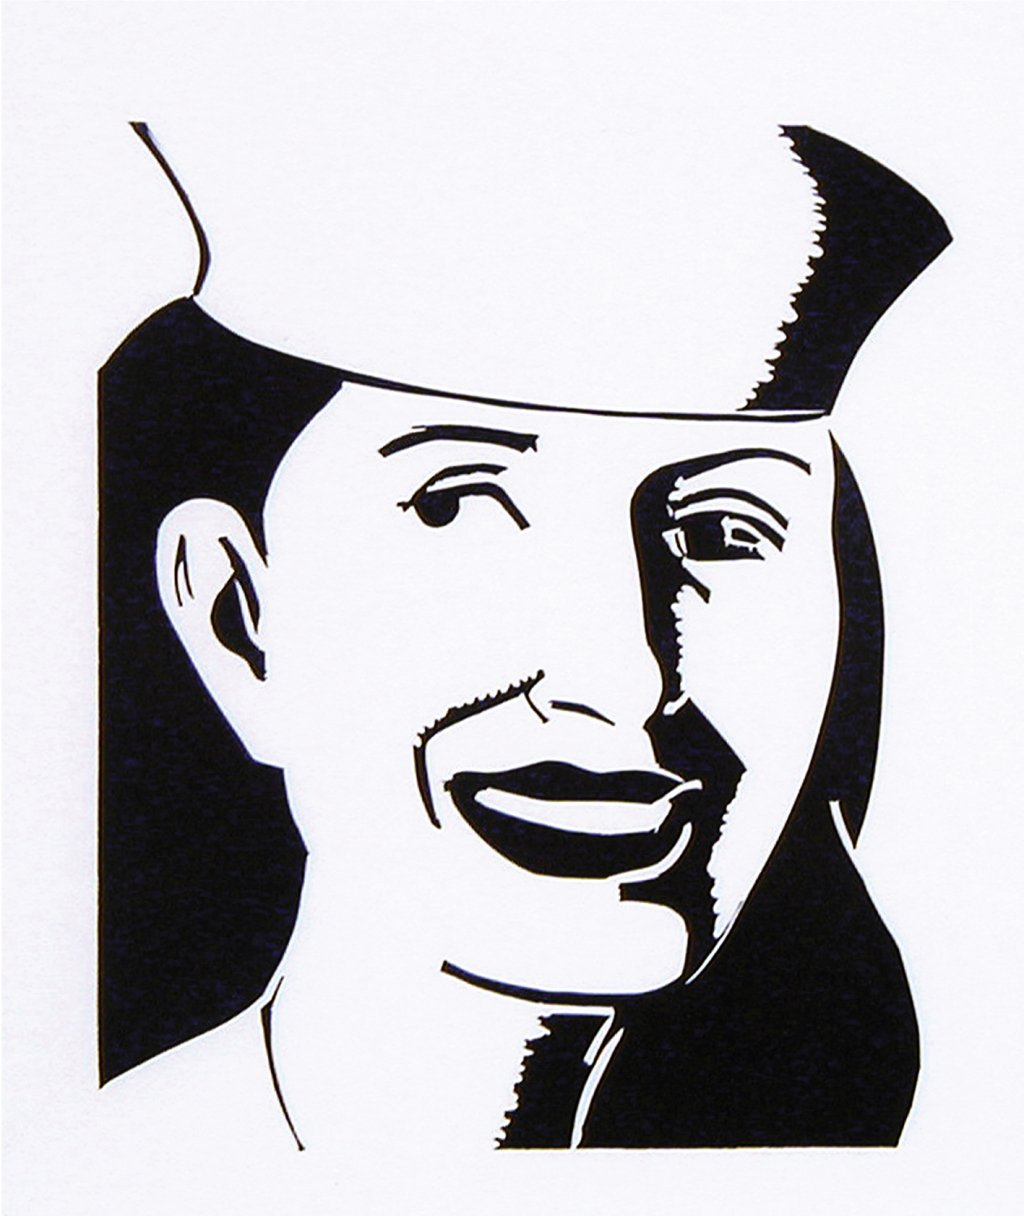 by alex_katz - The Sailor Hat